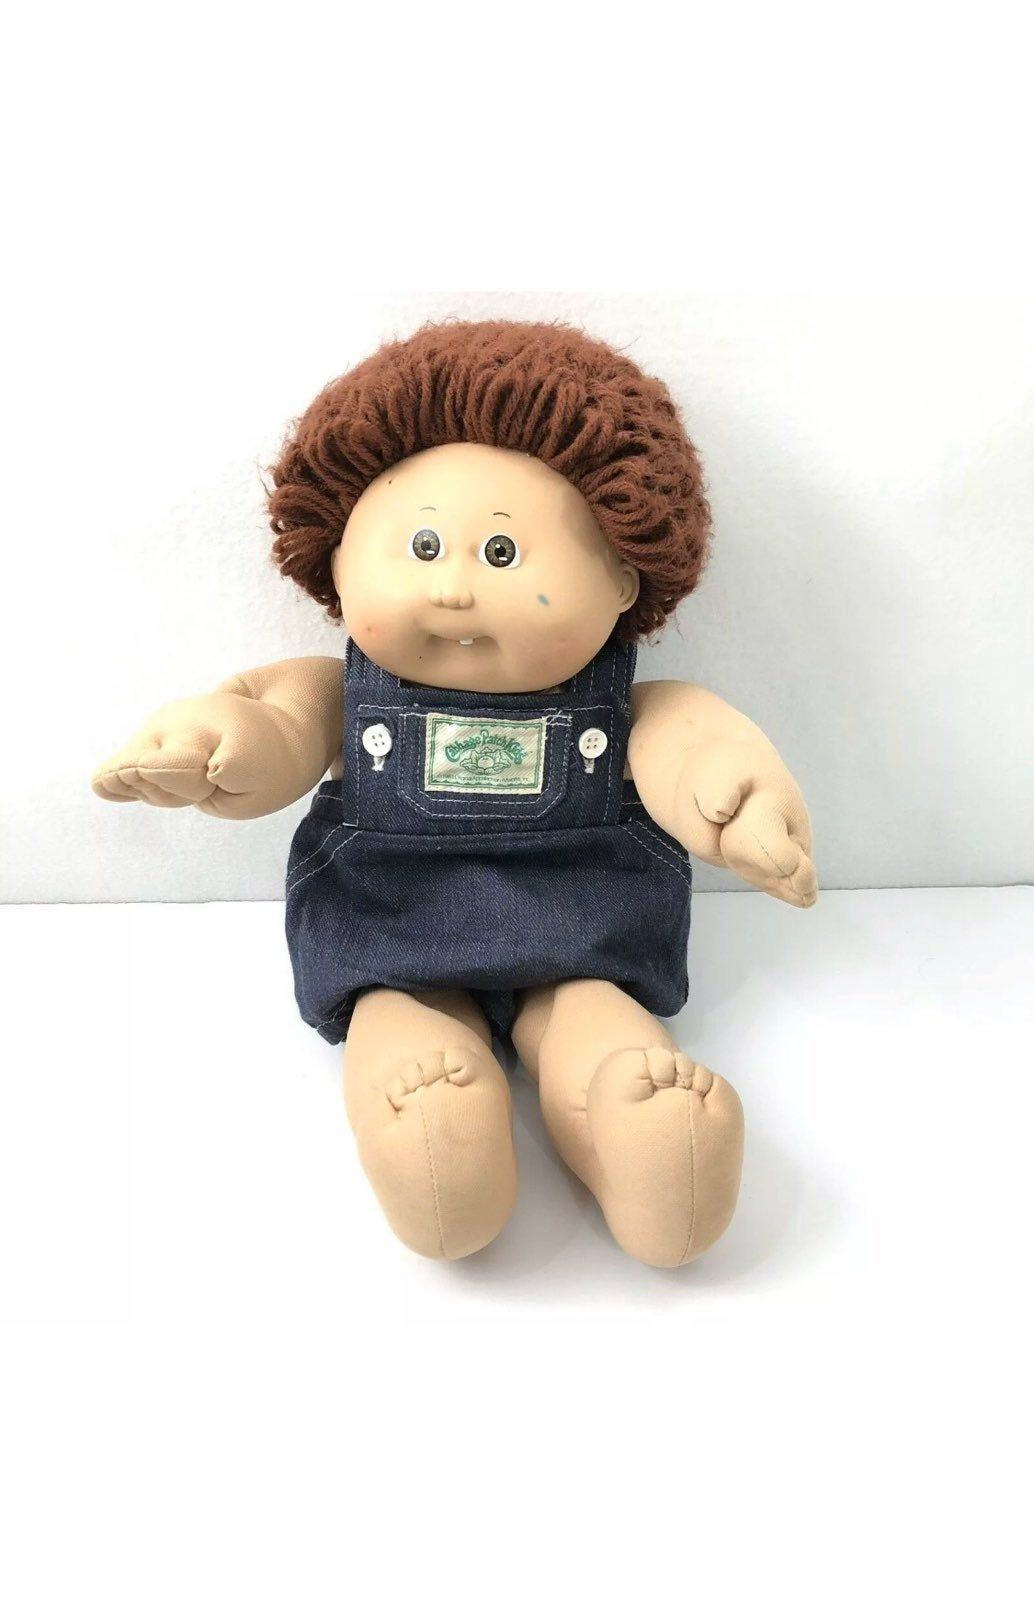 Vintage Xavier Roberts Cabbage Patch Kids Doll 1978 1982 Boy Red Loop Hair Great Vintage Condition Over Cabbage Patch Dolls Cabbage Patch Cabbage Patch Kids